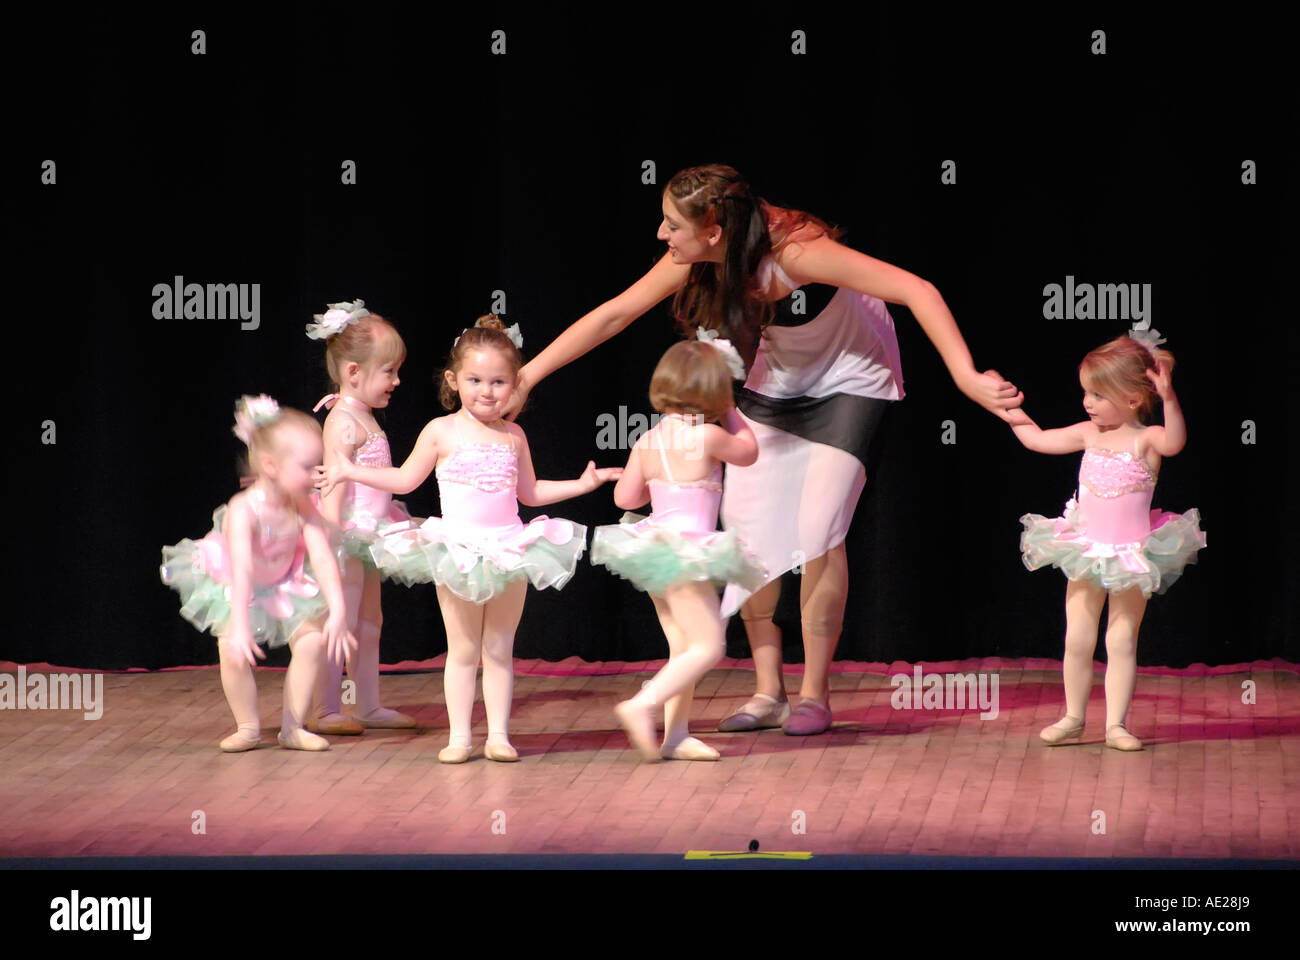 Girls perform on stage during a dance recital - Stock Image